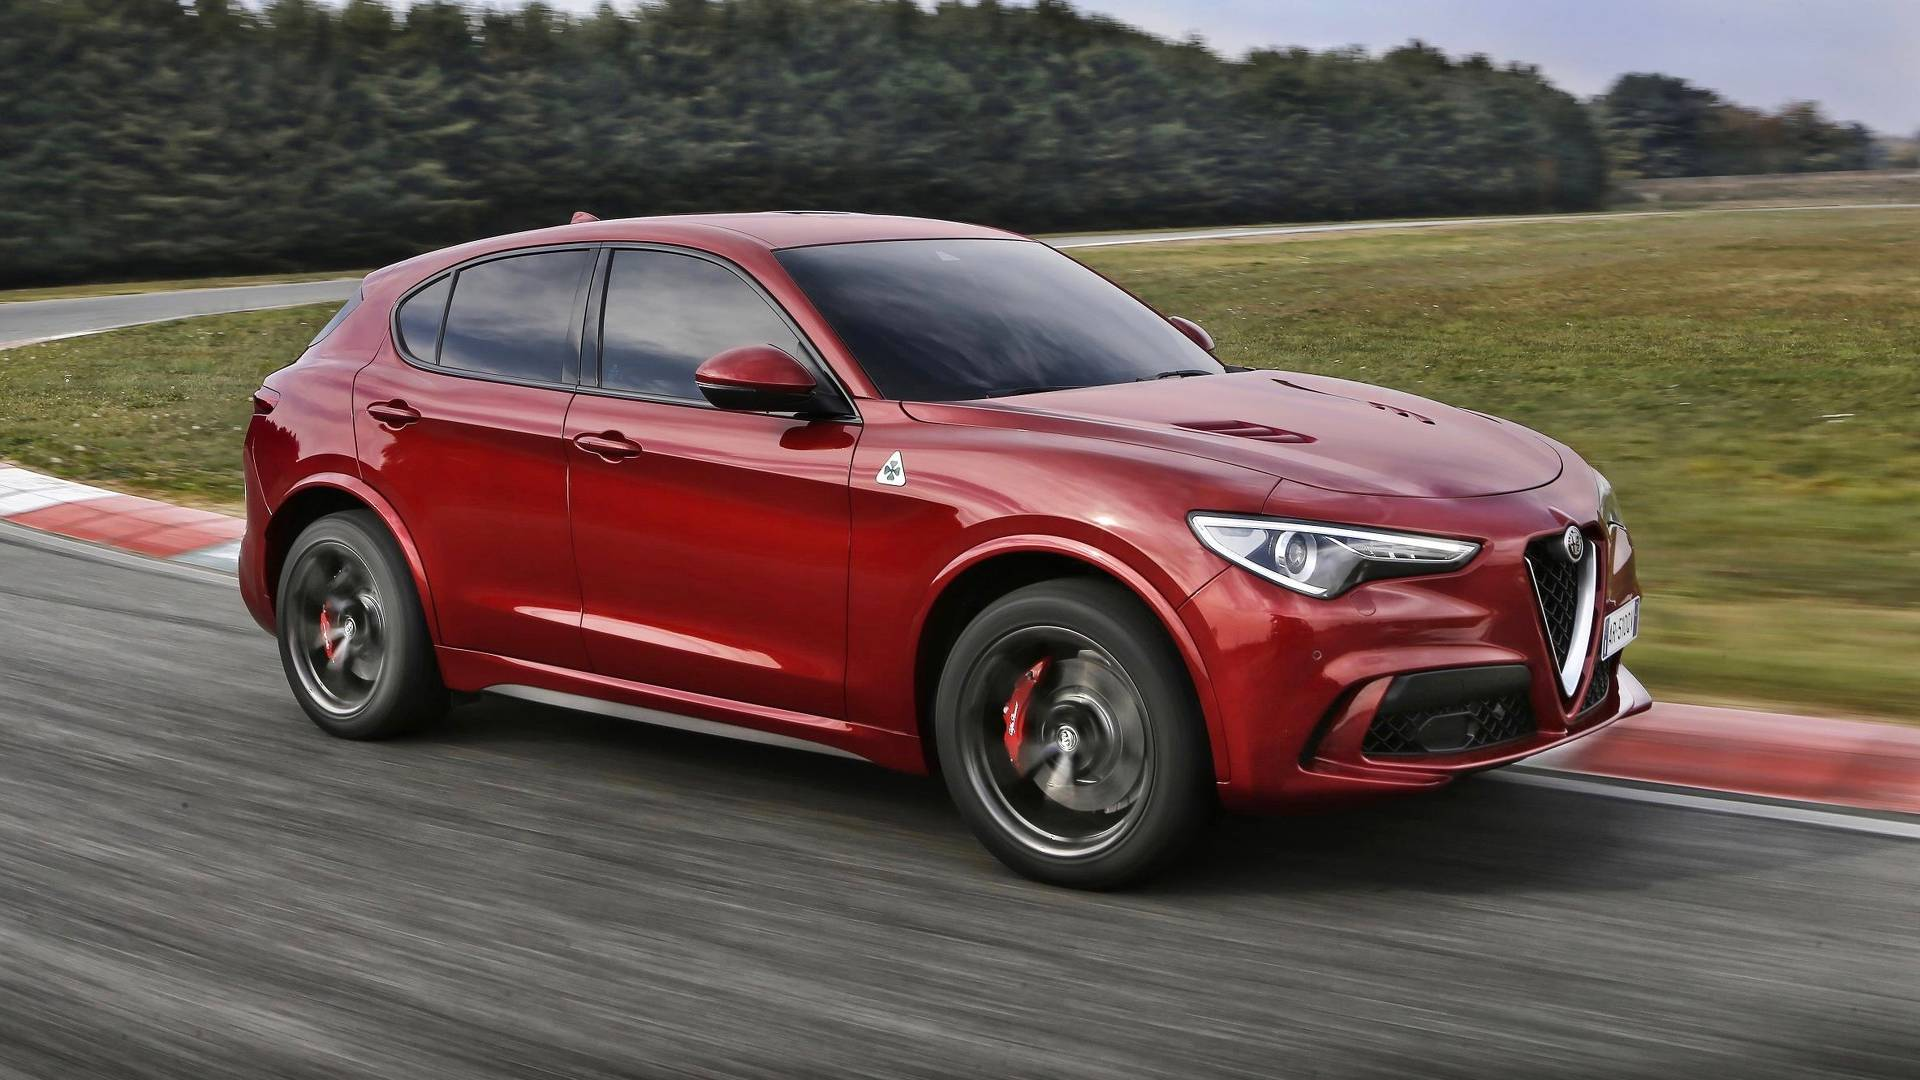 Top Fastest SUVs In The World - Show me the fastest car in the world